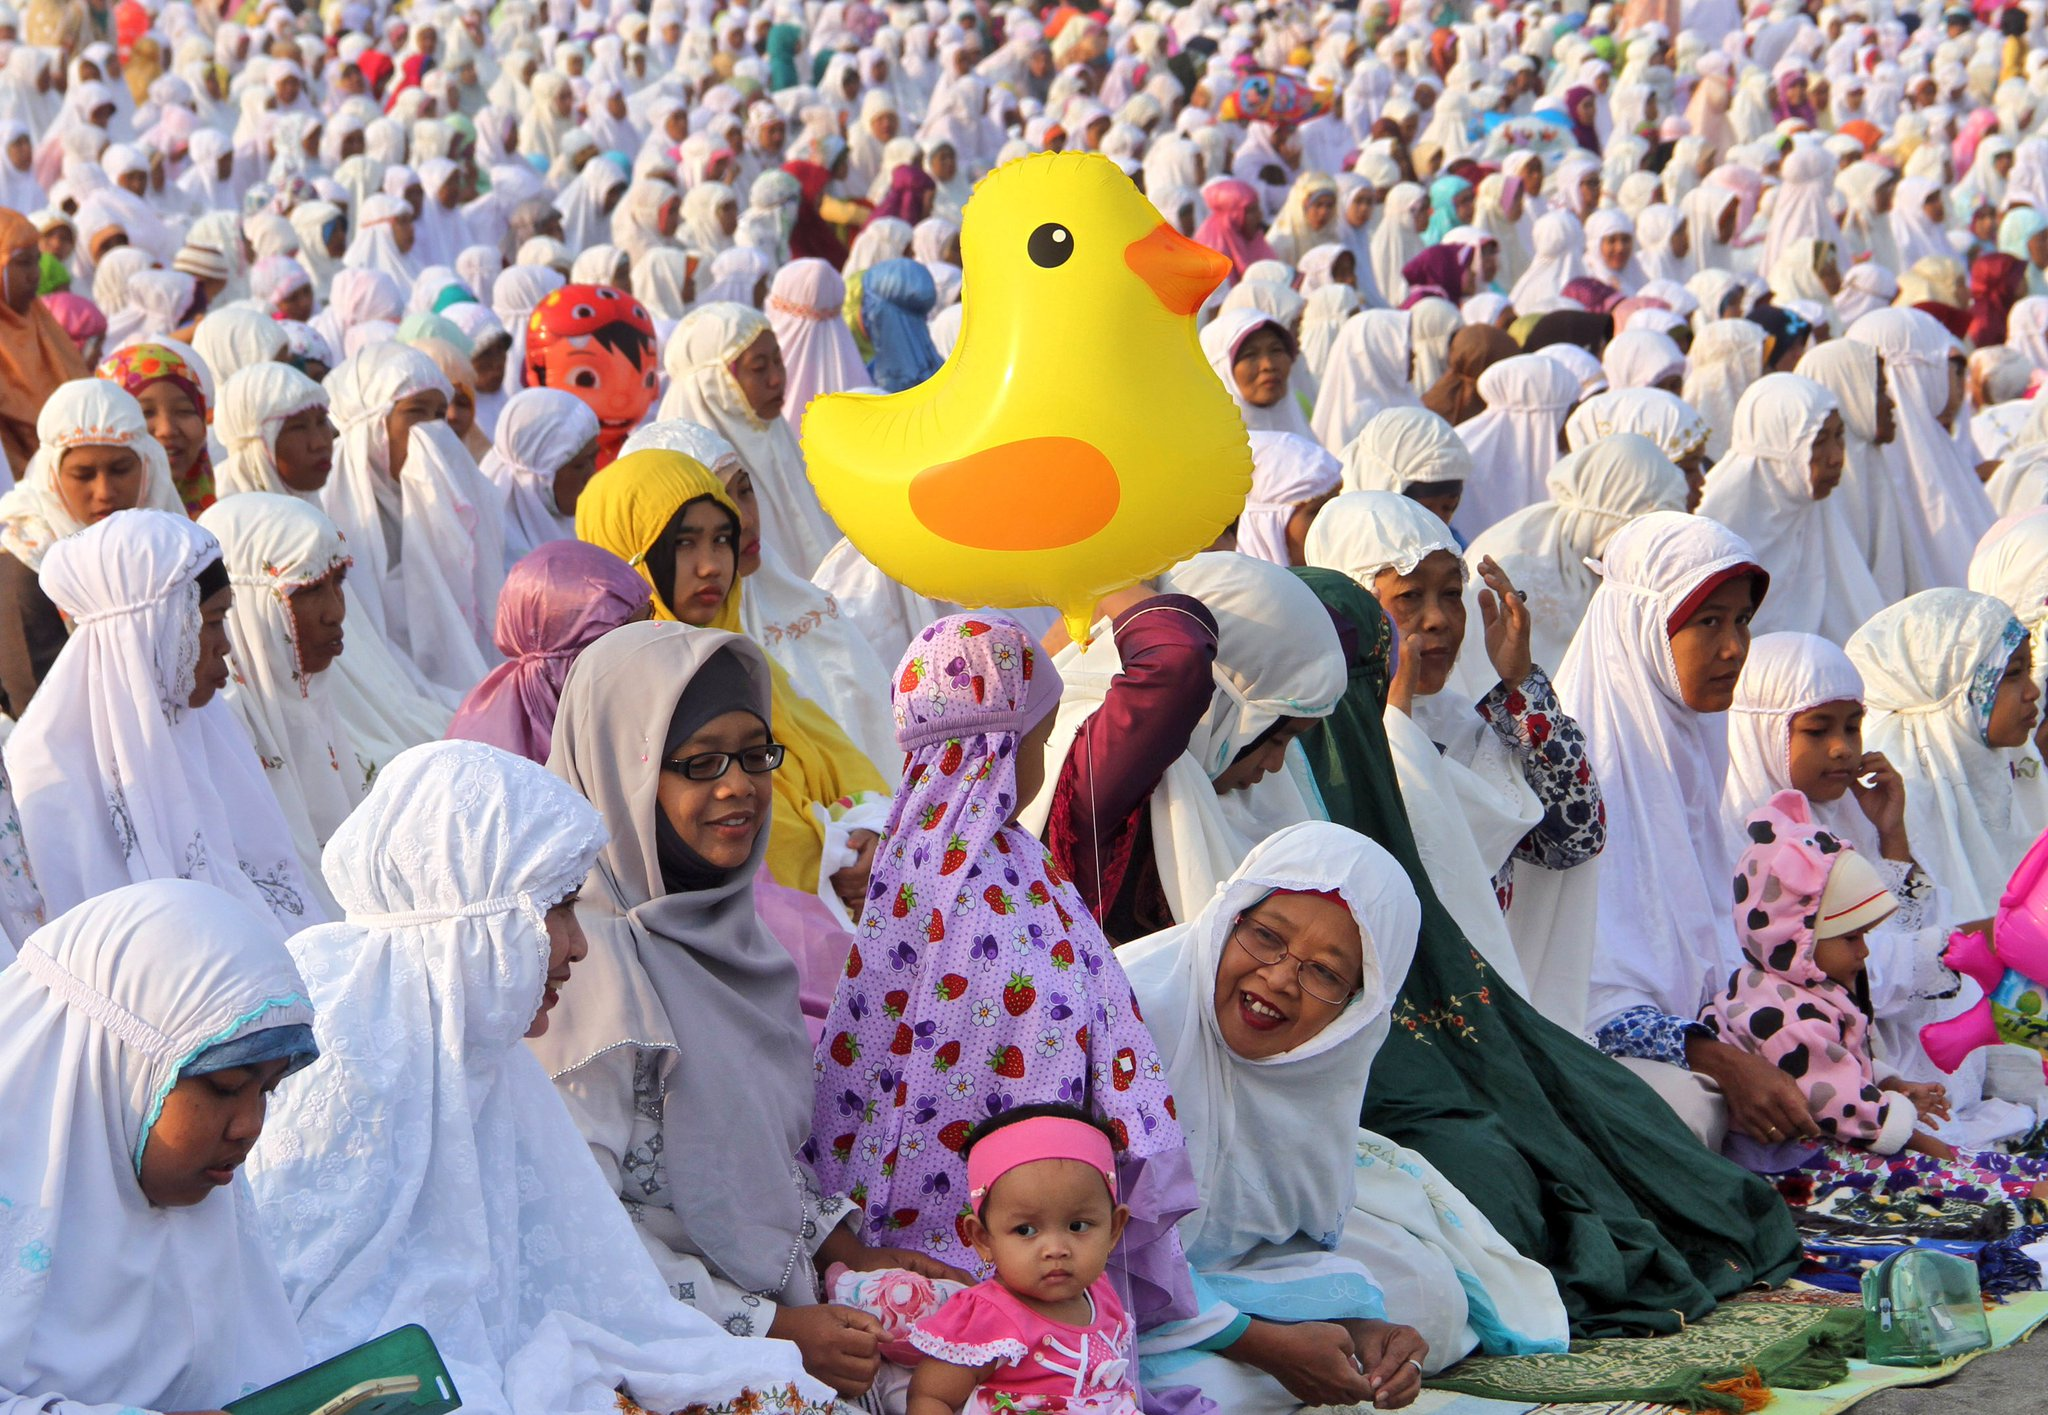 Eid Mubarak in Arabic means 'blessed celebration' and is a common greeting for Eid al-Fitr https://t.co/KRcw6Aeiag https://t.co/RT4bBZ04FG